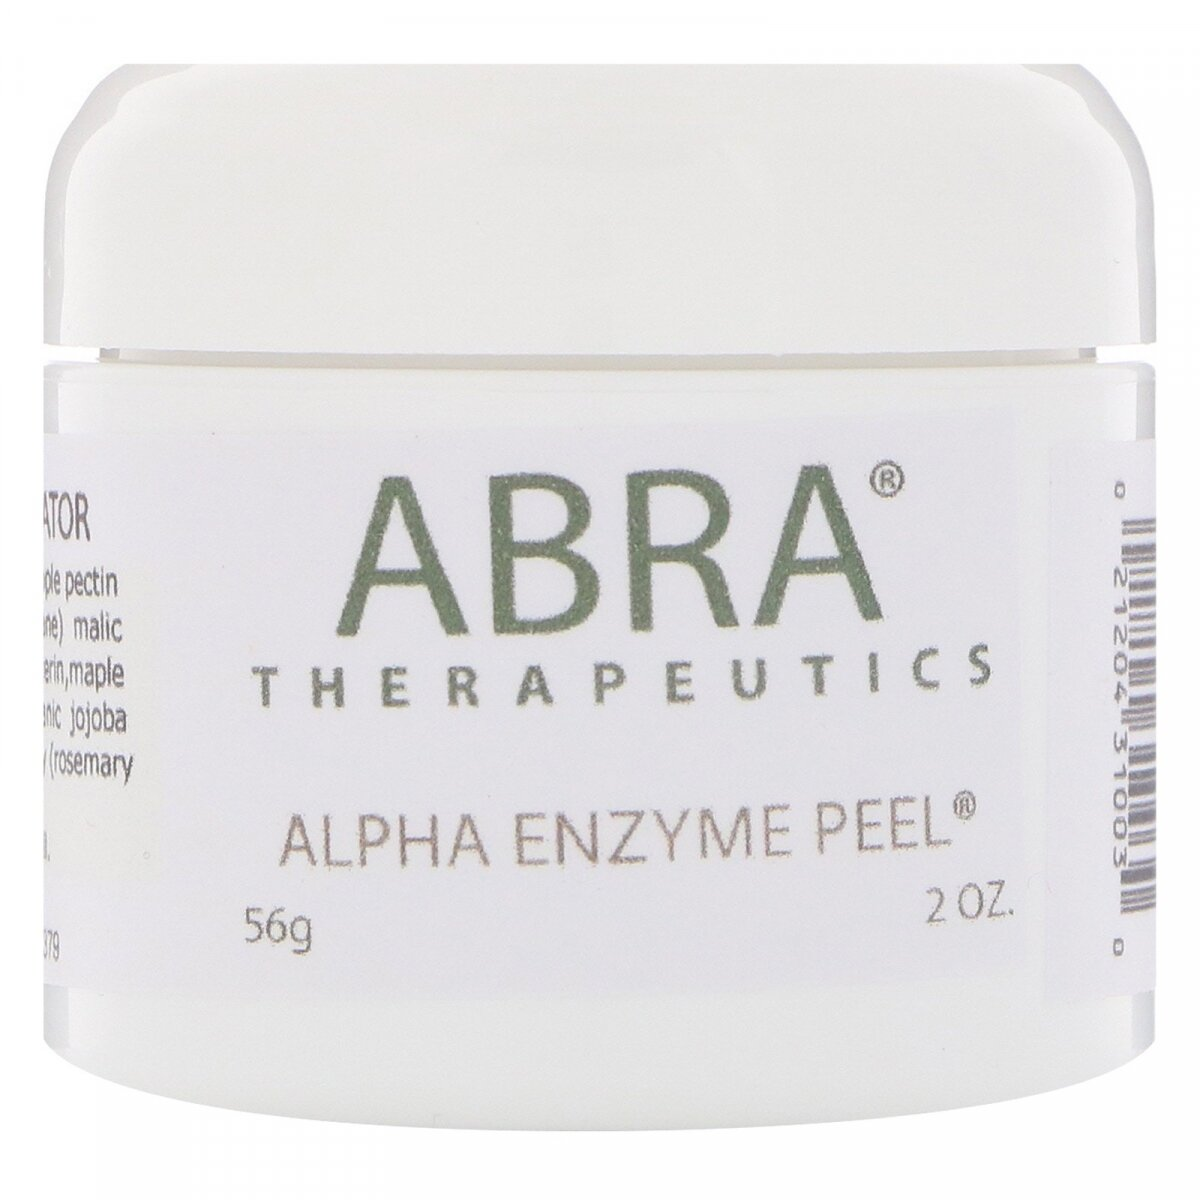 Маска для лица, Alpha Enzyme Peel, Abra Therapeutics, 56г